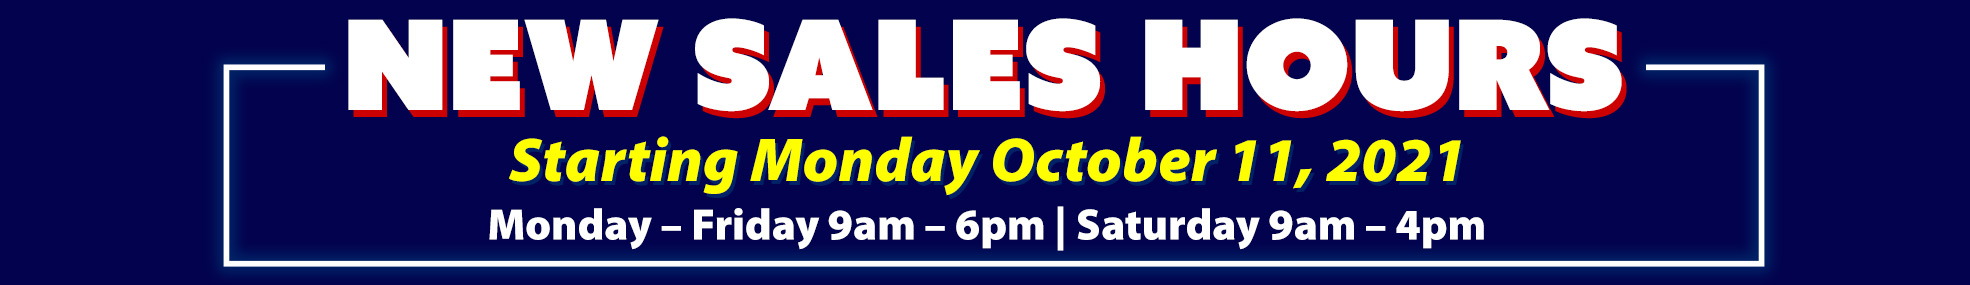 New Sales Hours